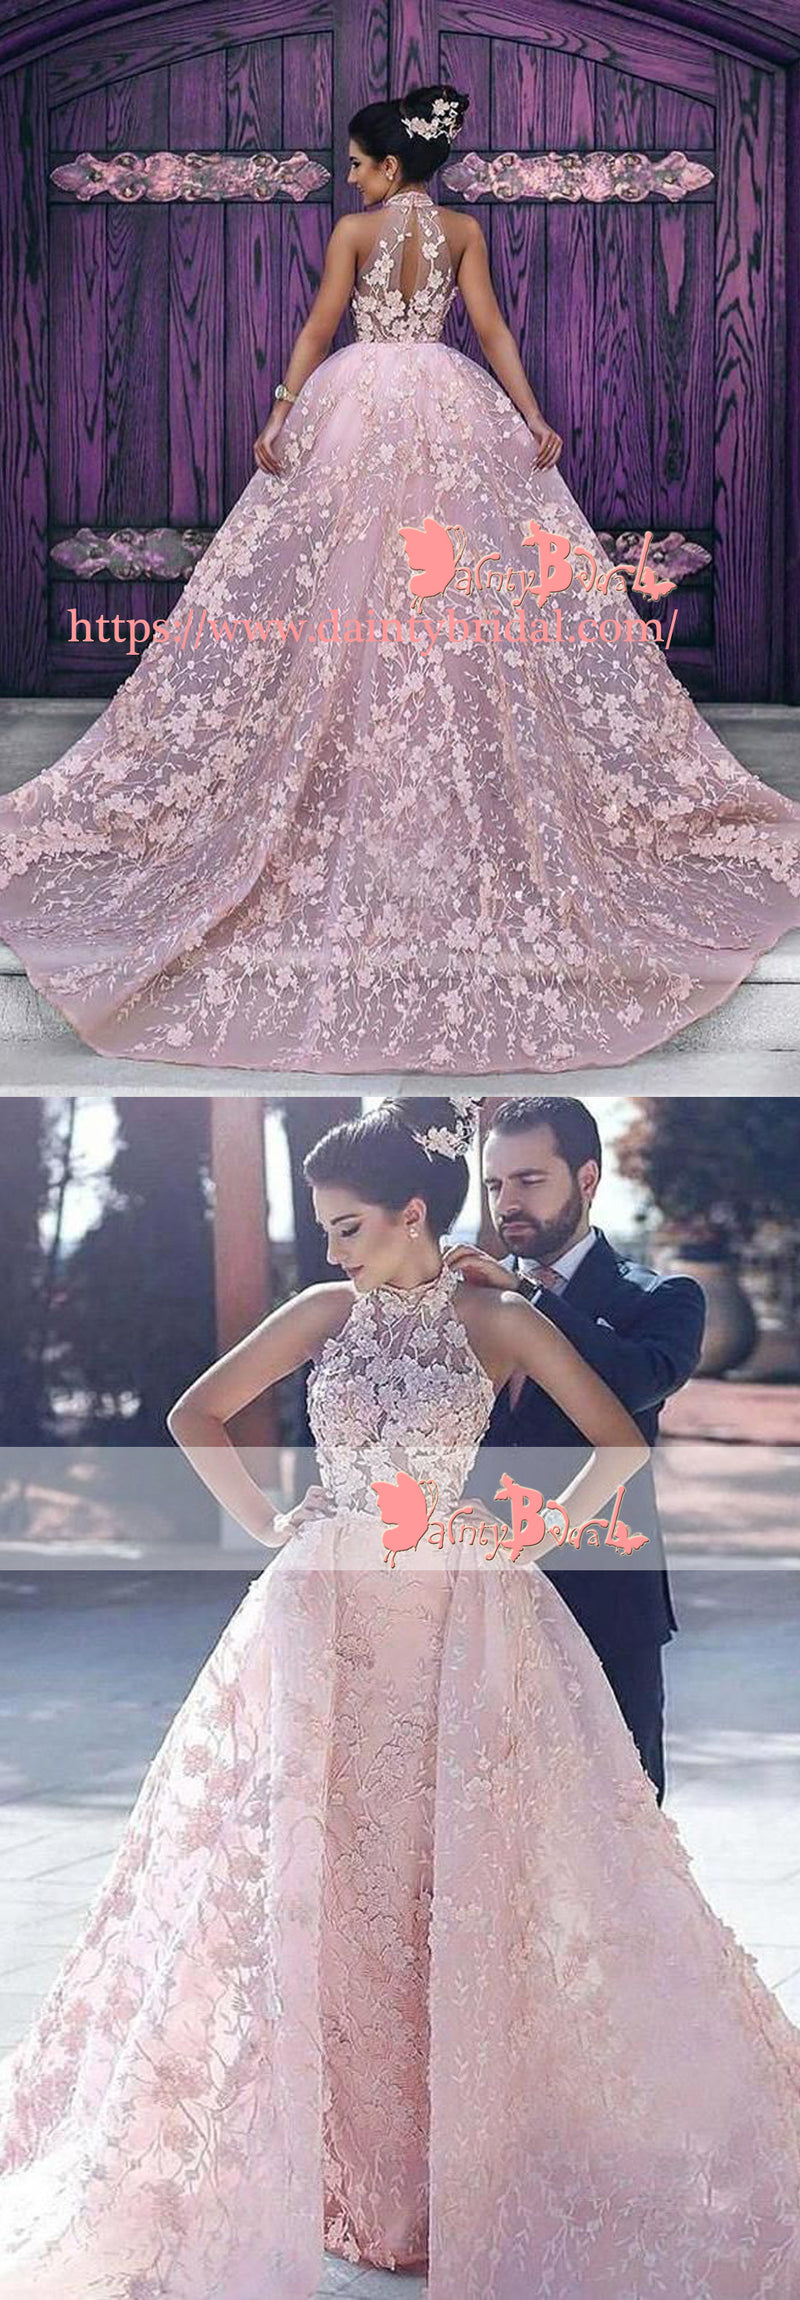 Blush Pink Lace Appliques High Neck Sleeveless Gorgeous Princess Ball Gown  Prom Dresses. DB1051 50773fcb7024